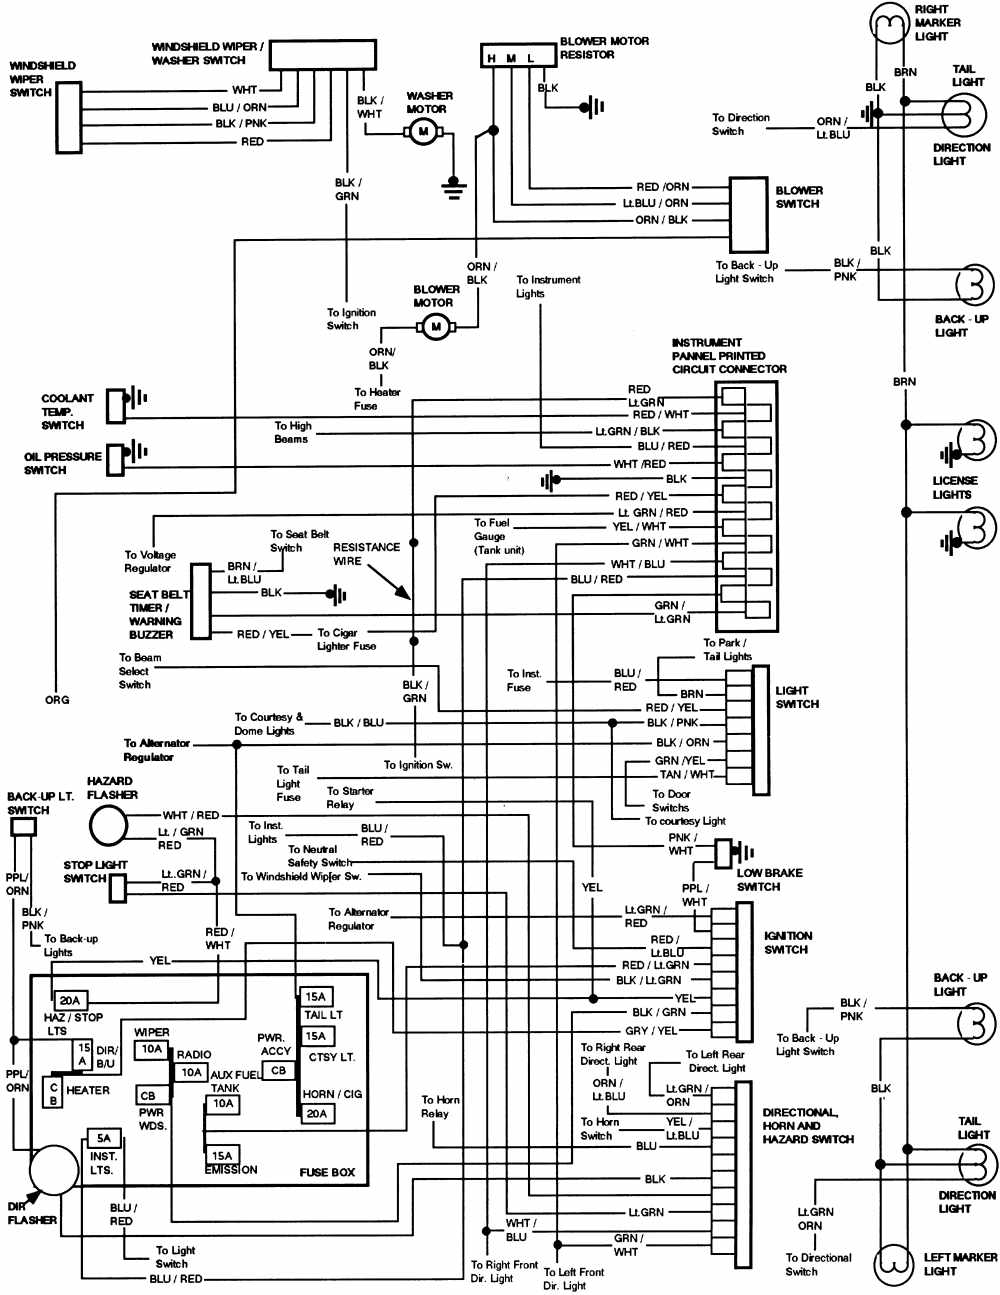 wiring diagram for 1984 chevrolet 1500